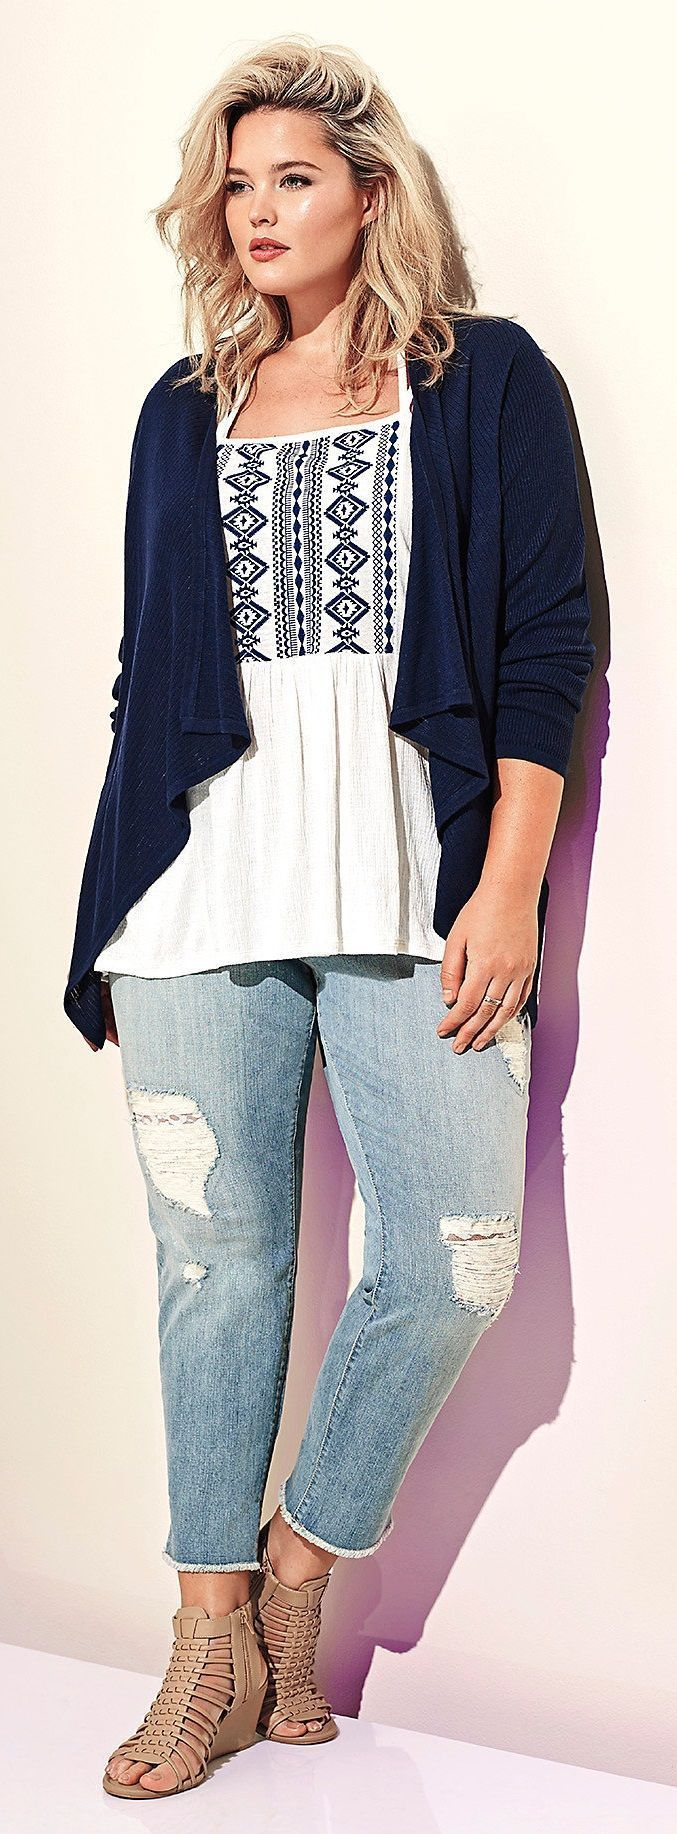 nice Torrid - Torrid Faux Embroidered Tank Top by http://www.globalfashionista.xyz/plus-size-fashion/torrid-torrid-faux-embroidered-tank-top/ #PlusSizeClothing